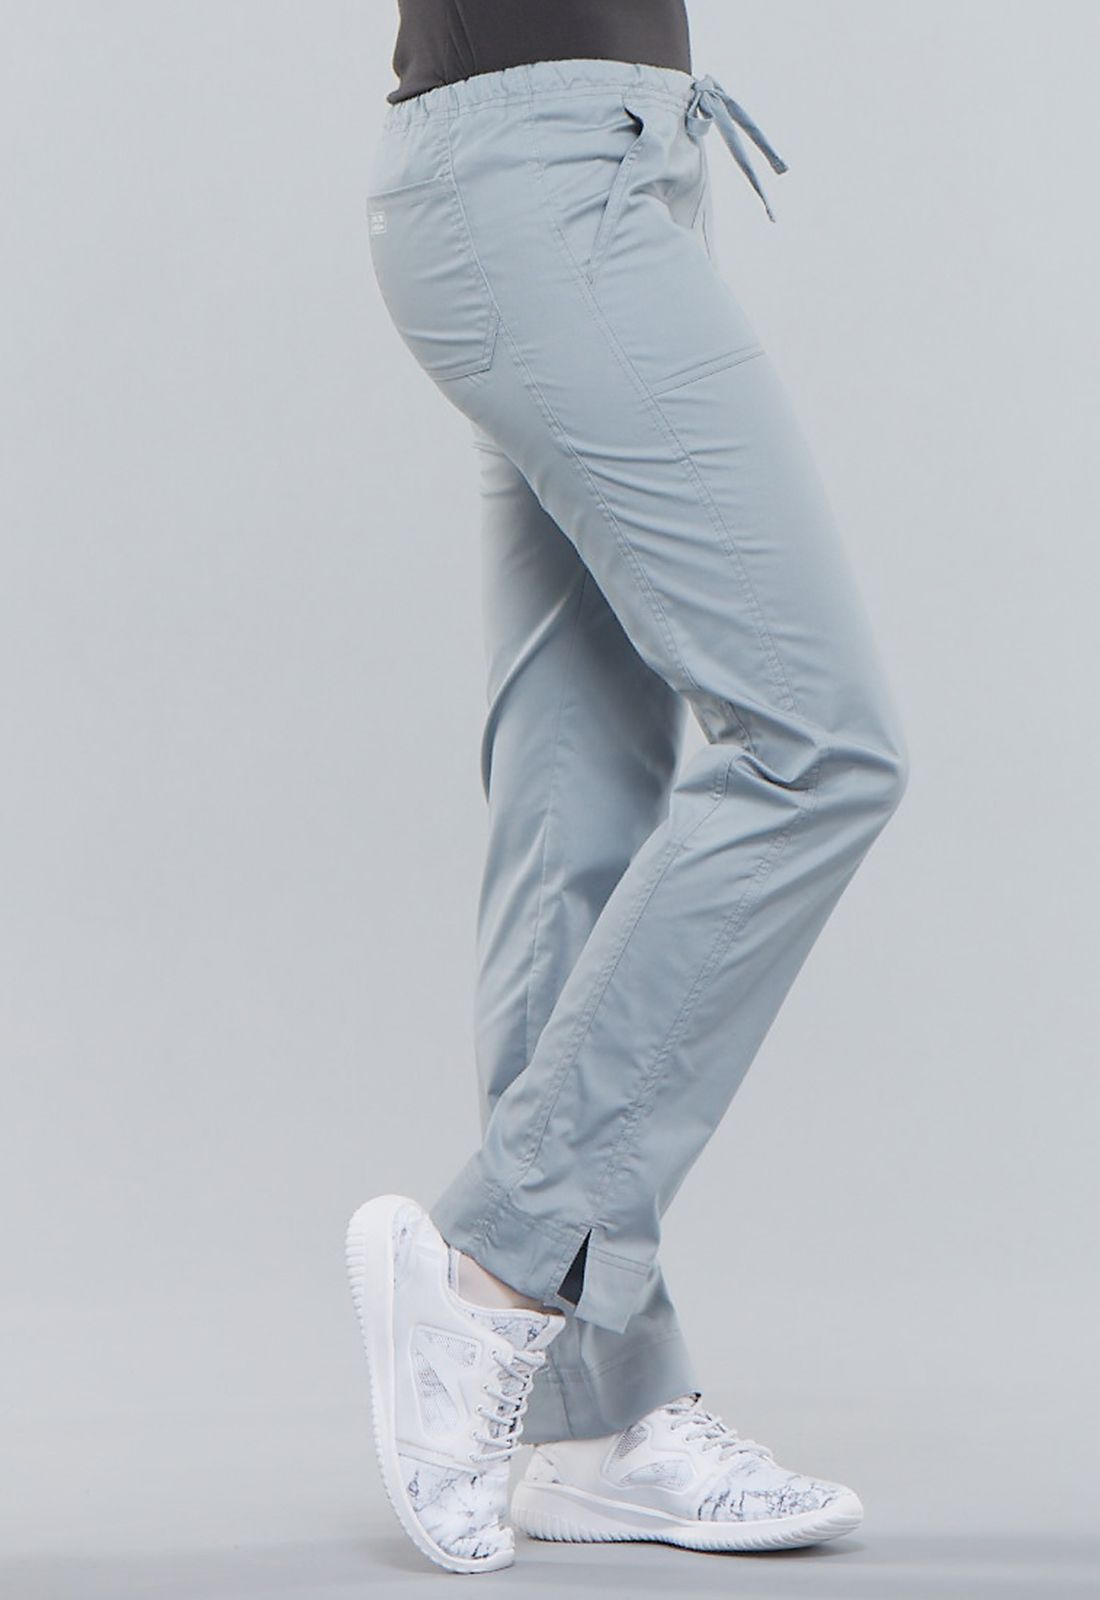 https://medcloth.by/images/stories/virtuemart/product/cherokee-4203-grey-2.jpg